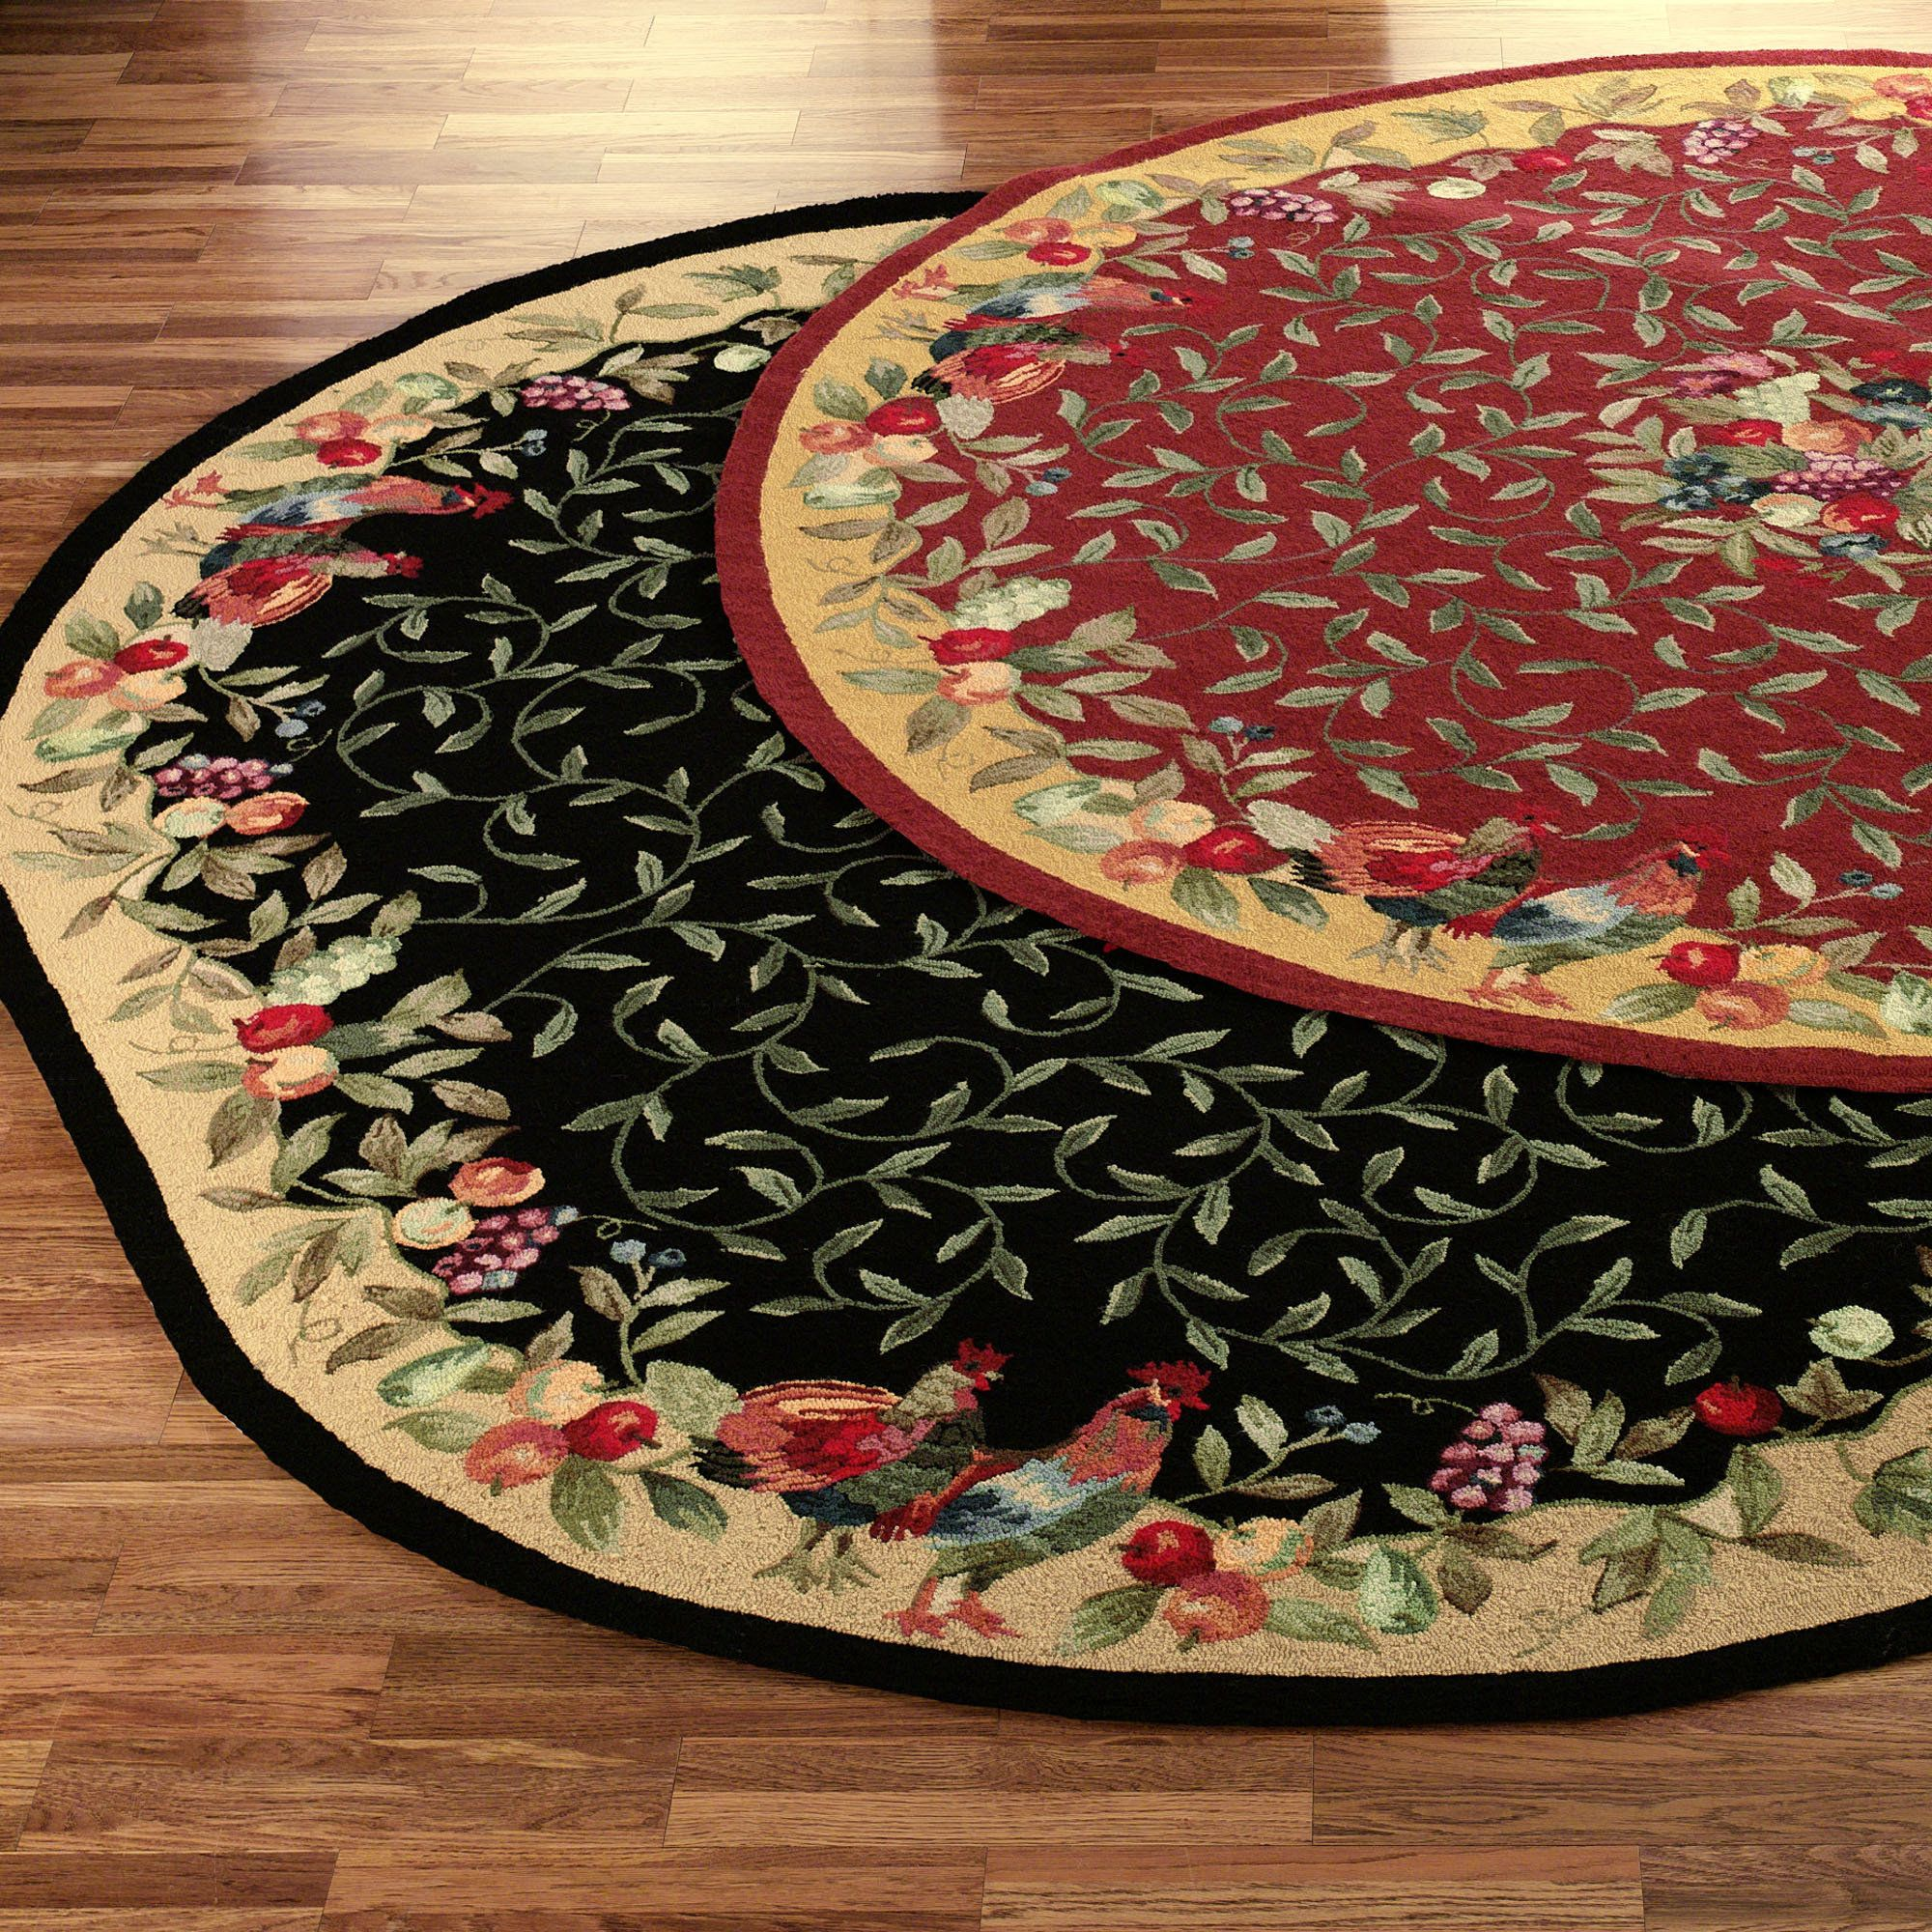 Rooster Kitchen Rugs Creating A Country Kitchen Nuance Kitchen